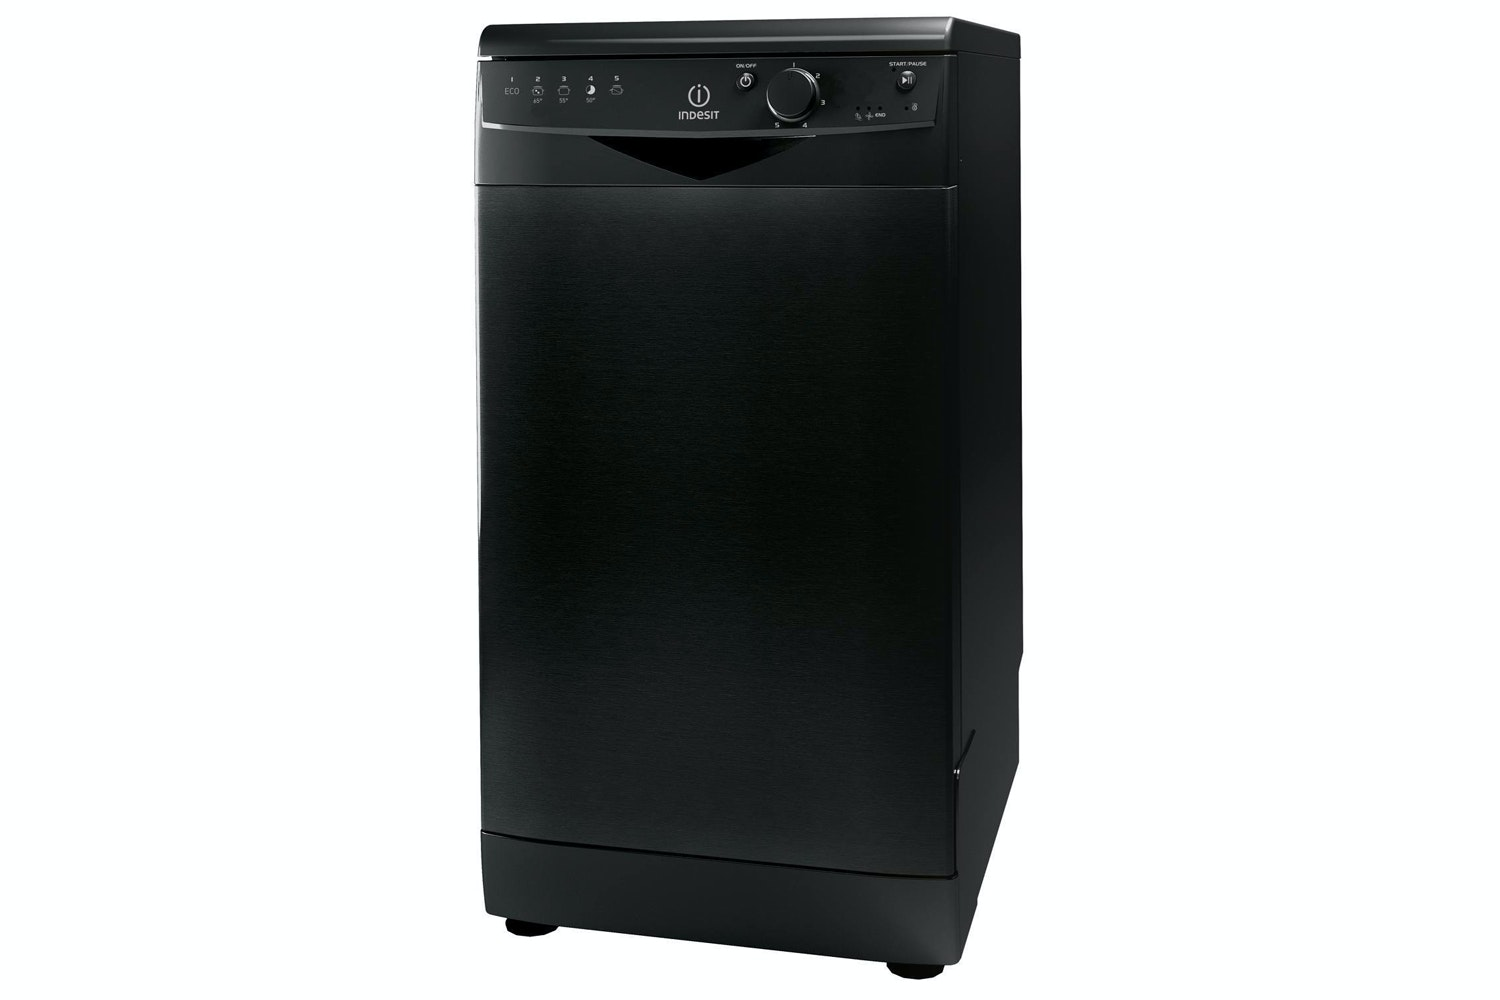 Indesit Slimline Dishwasher | 10 Place | DSR15BK